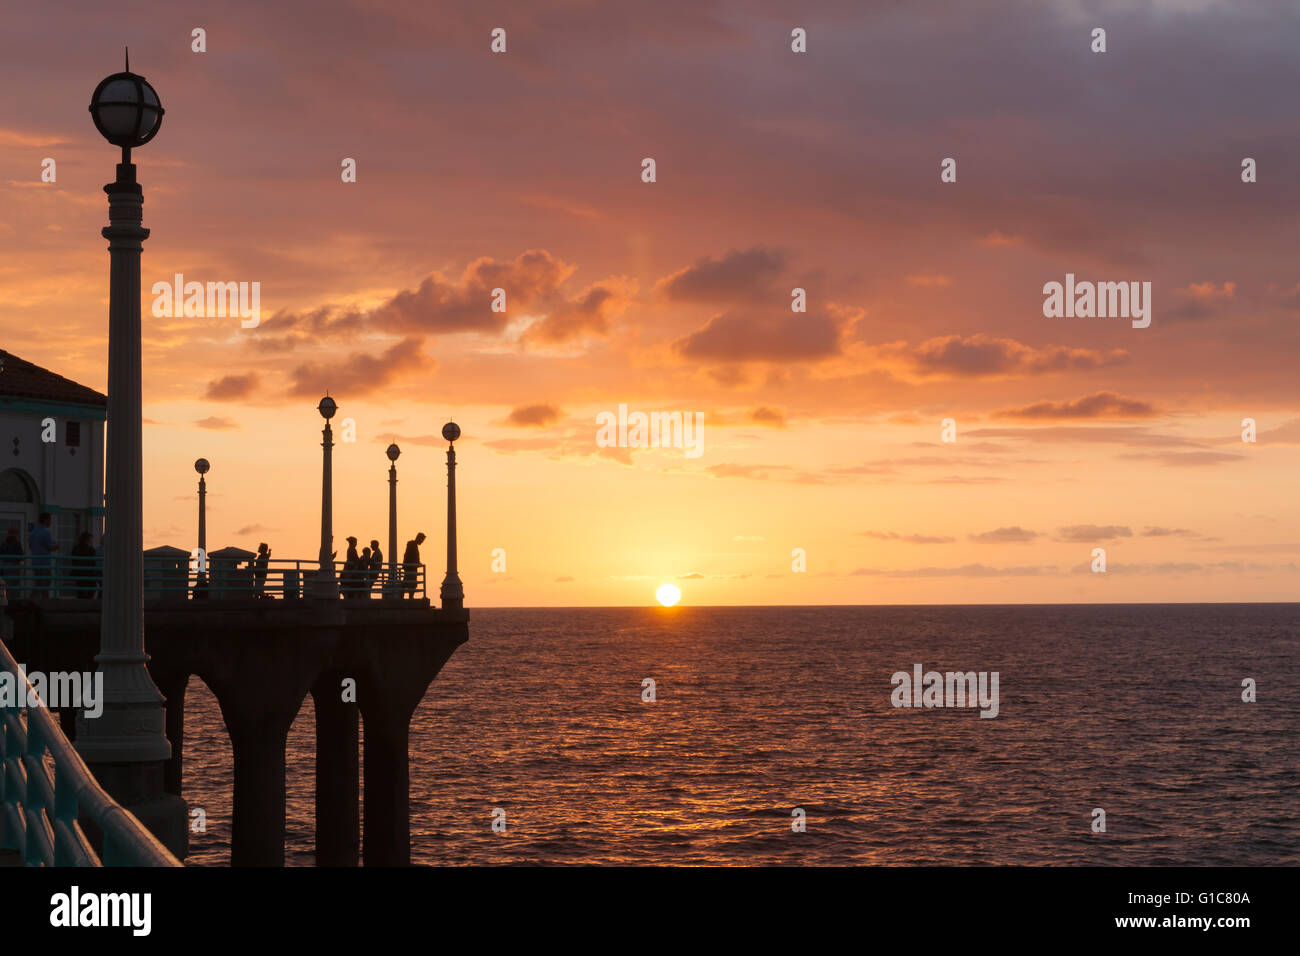 Silhouettes of people gathered to experience sunset over ocean from Manhattan Beach pier watching sunset sunset - Stock Image